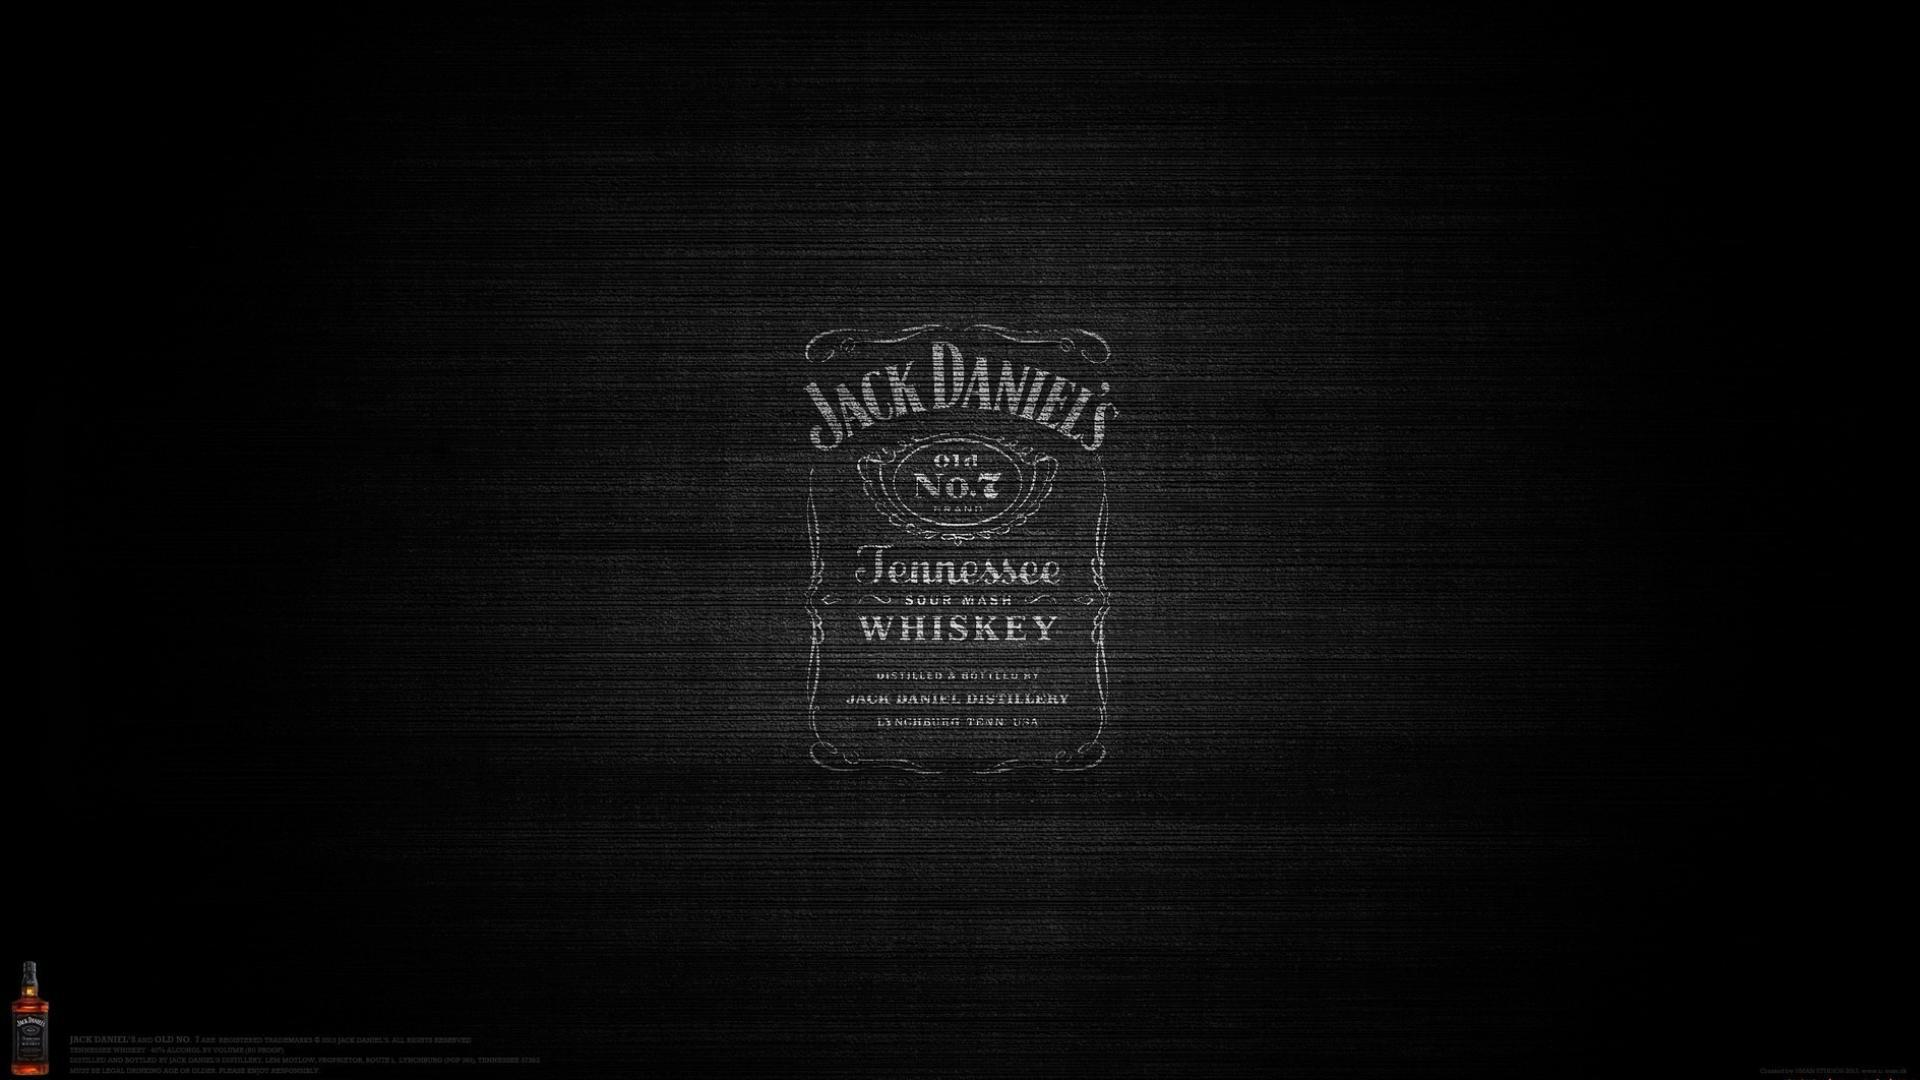 Jack daniels high definition wallpapers voltagebd